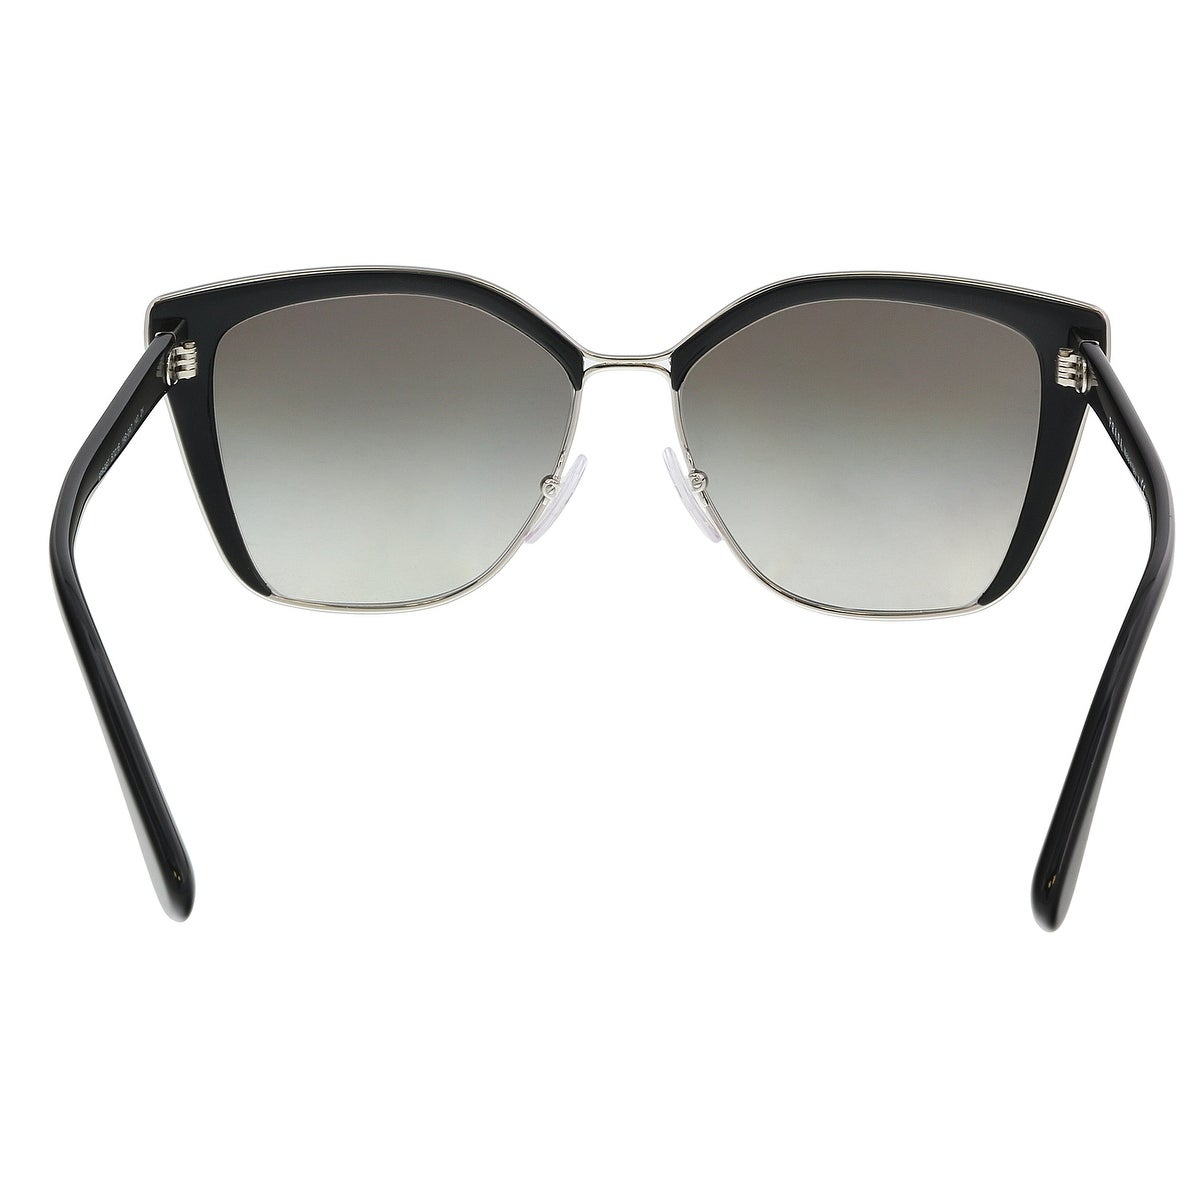 d85393fdc595 Shop Prada PR 56TS 1AB0A7 Black   Silver Cat eye Sunglasses - 57-16-140 - Free  Shipping Today - Overstock - 21158280